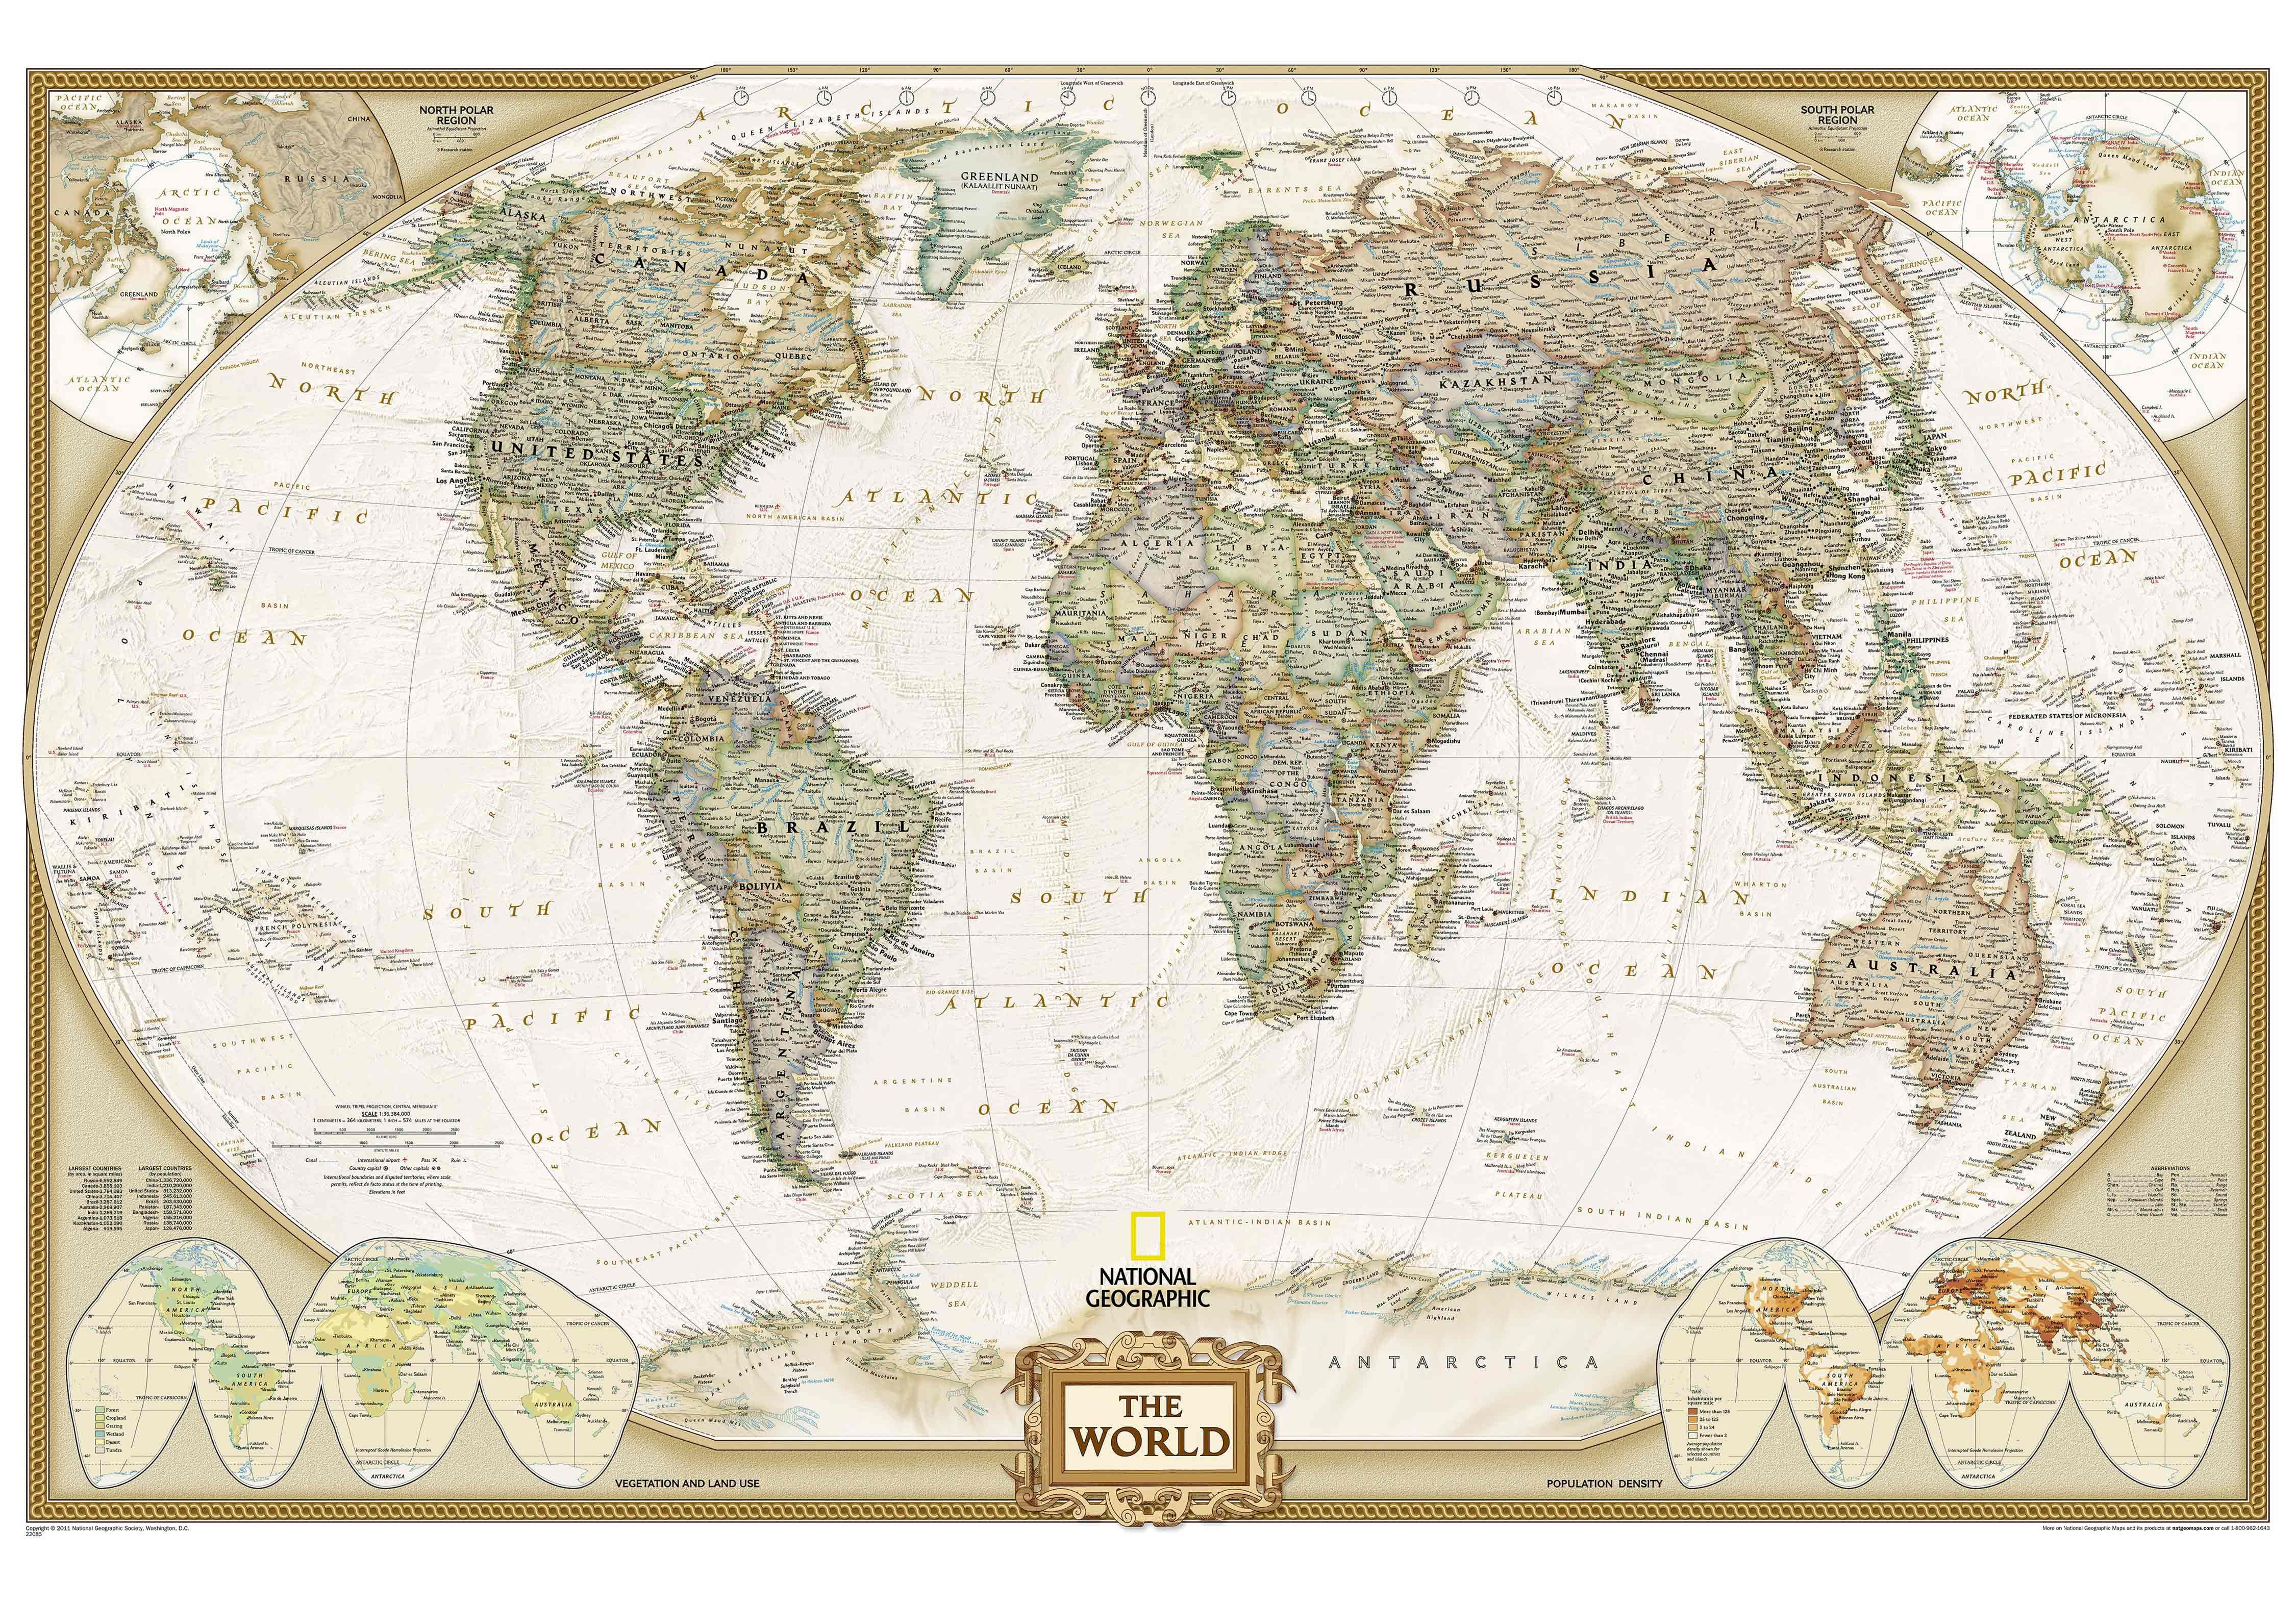 1 world maps online national geographic world map wall mural world executive map antique tones two sizes and spanish available map type enlarged tubed x national geographic maps gumiabroncs Image collections